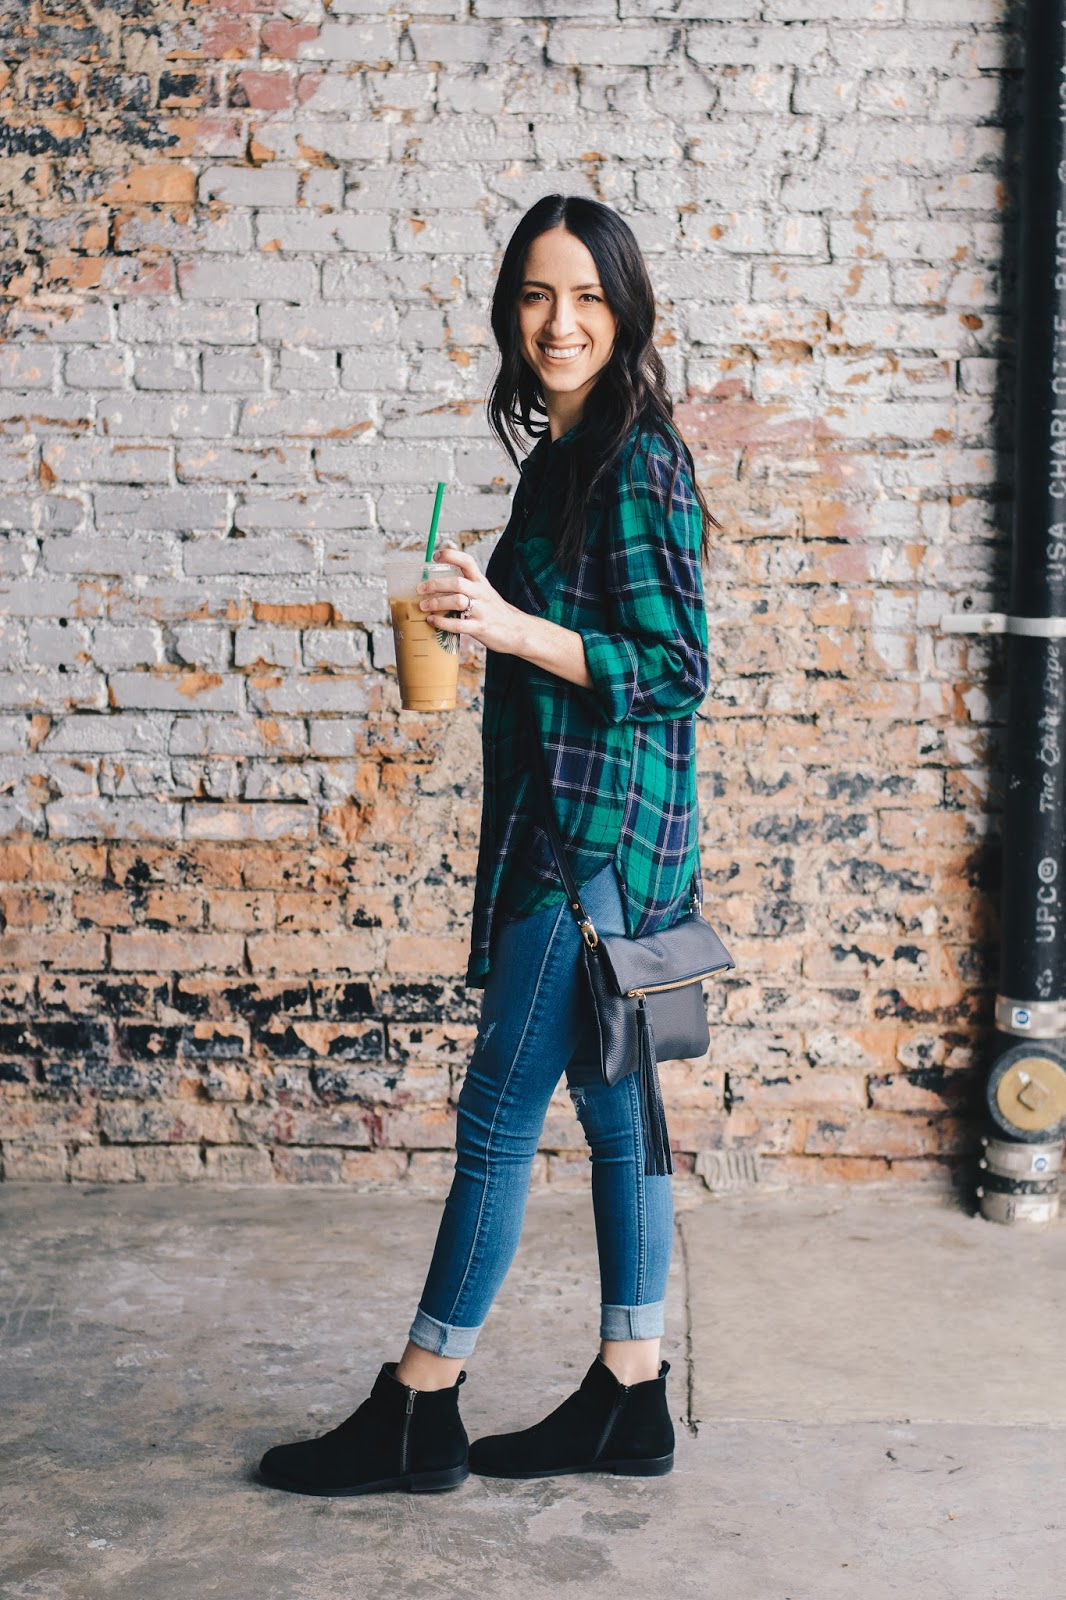 Casual weekend style in a plaid, flat suede booties and fringe cross body bag